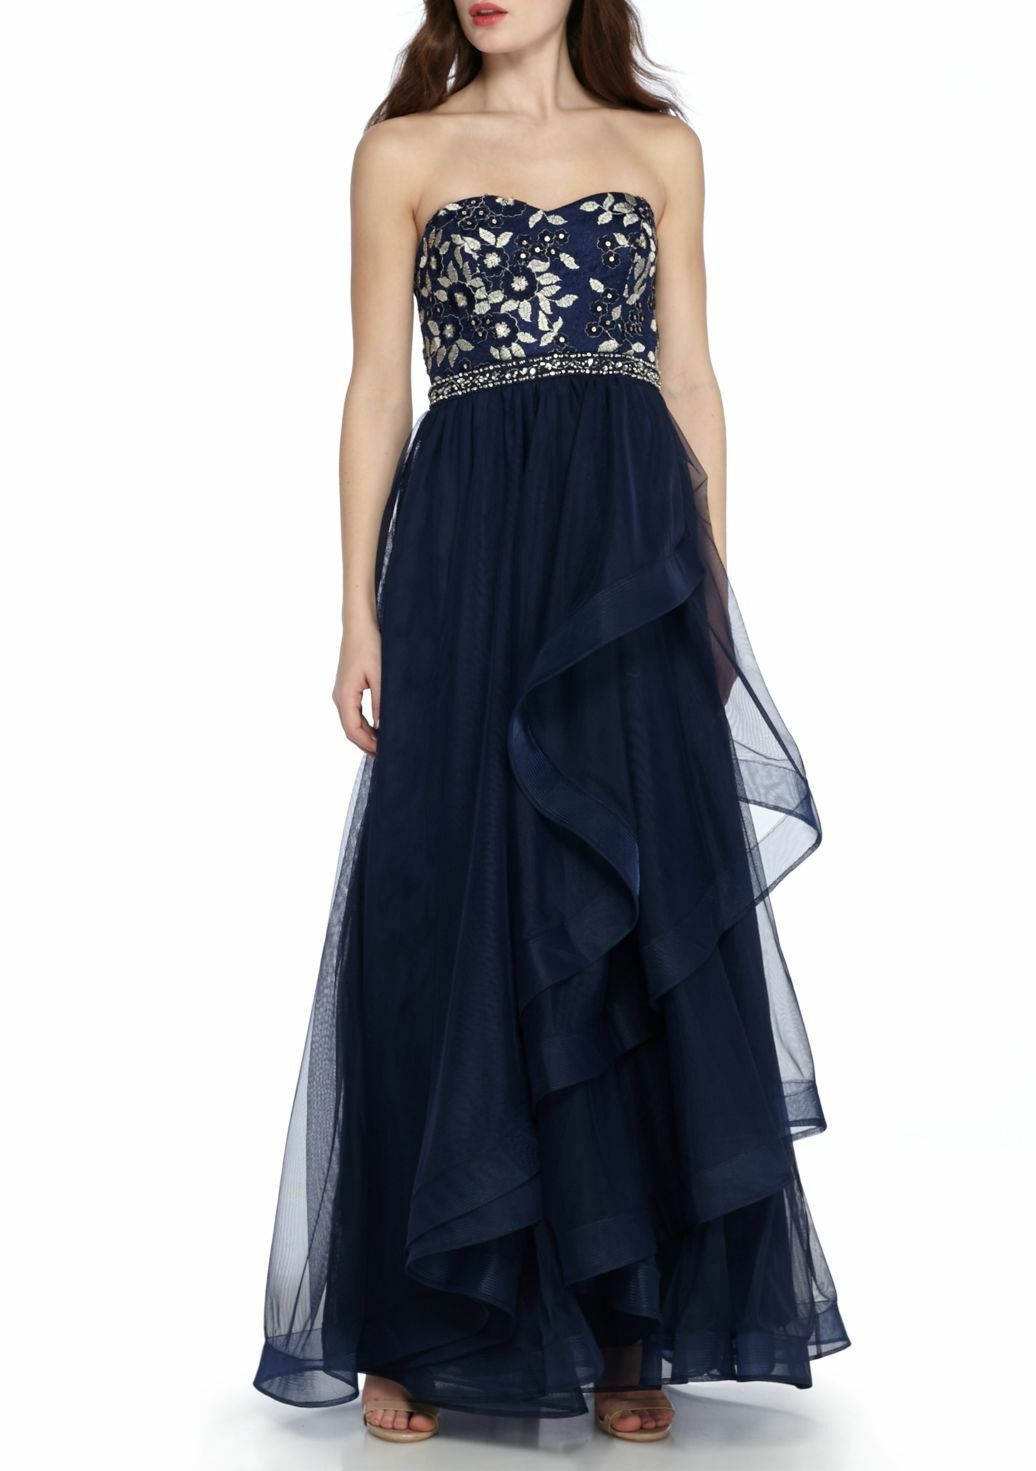 NWT Sequins Heart Navy Sequin Embroidered Bodice Gown Prom SZ 9 Retail  138